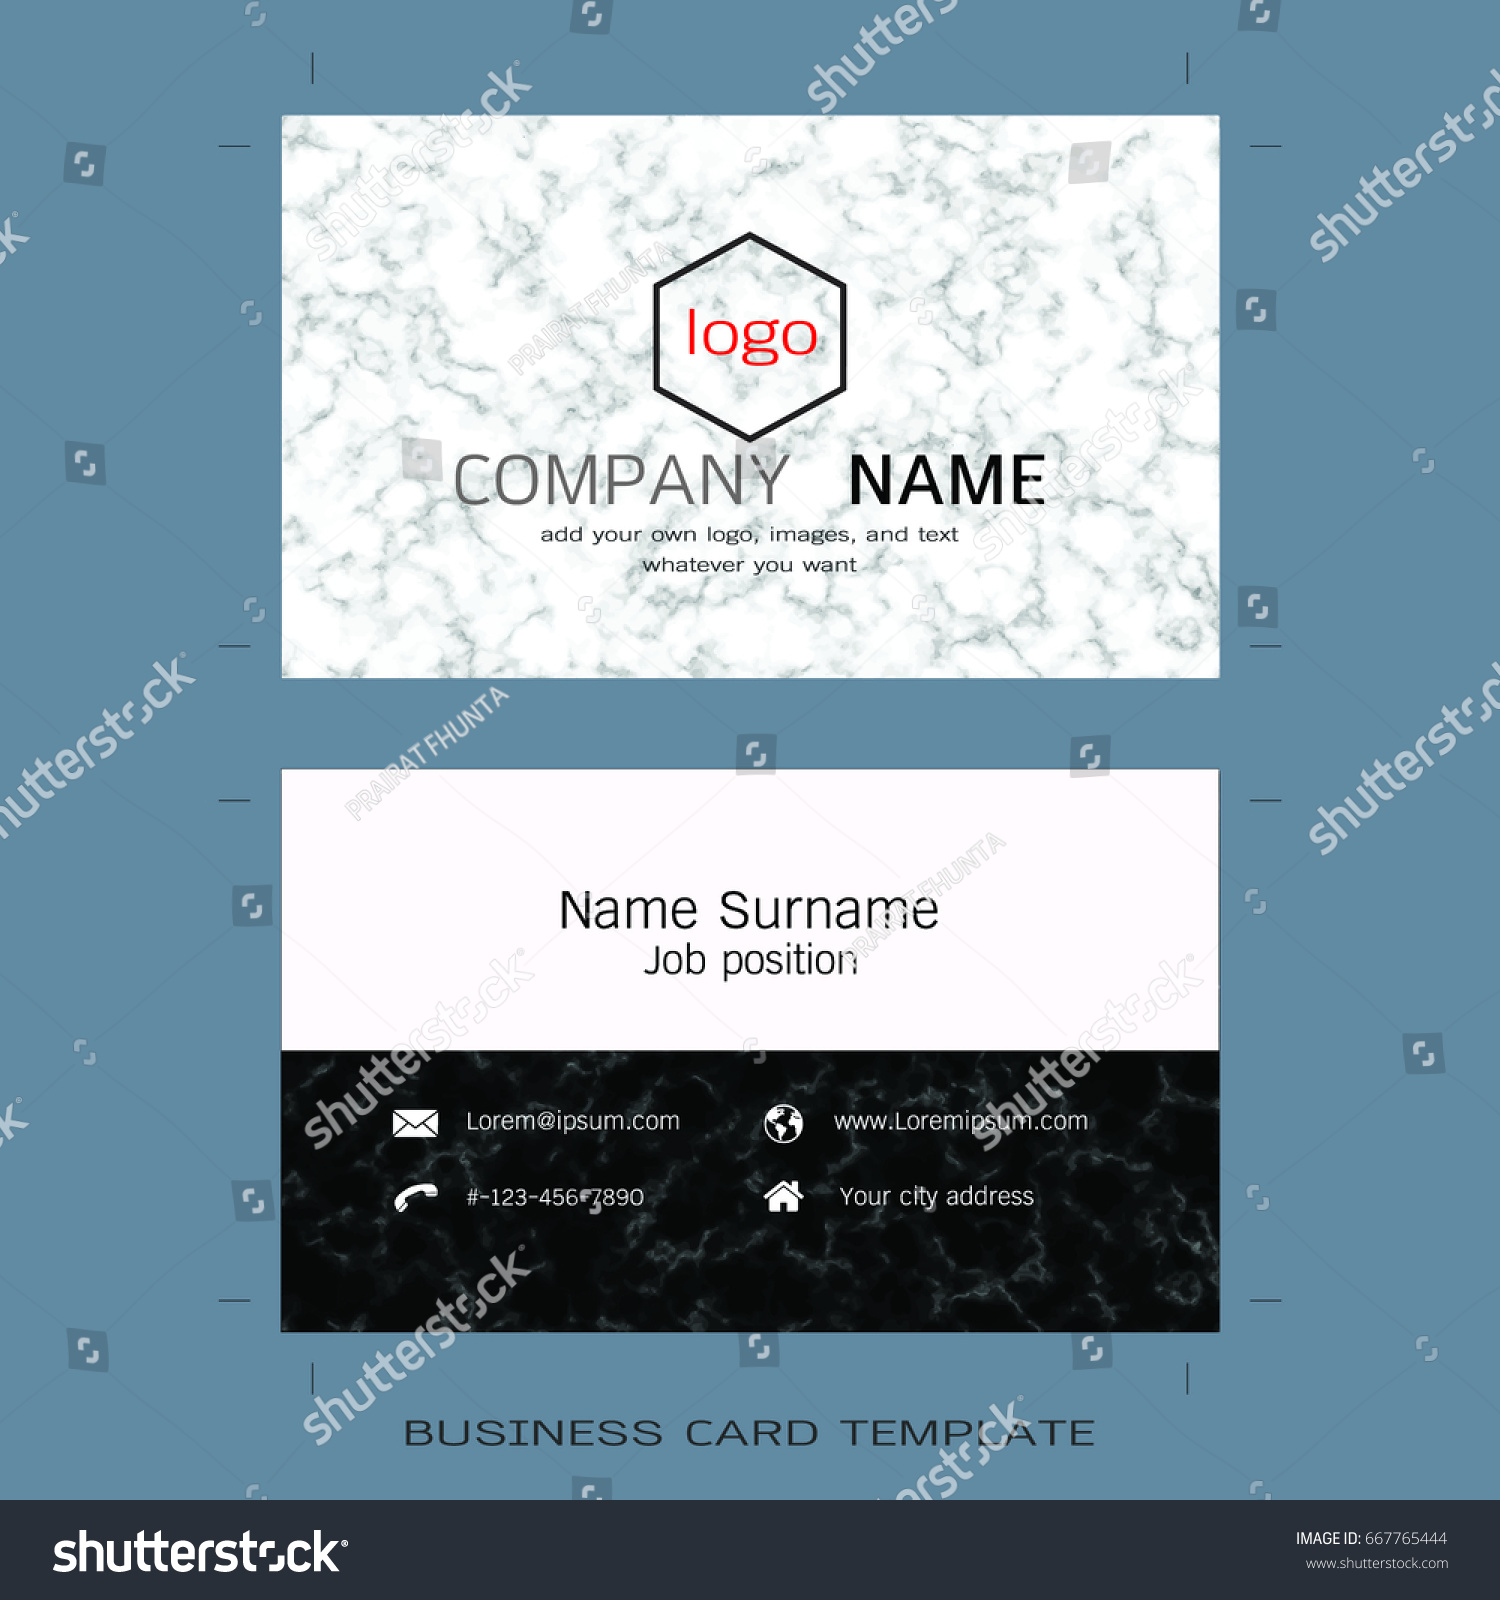 Modern designer business card layout templates stock vector modern designer business card layout templates marble texture background easy to use by print magicingreecefo Choice Image